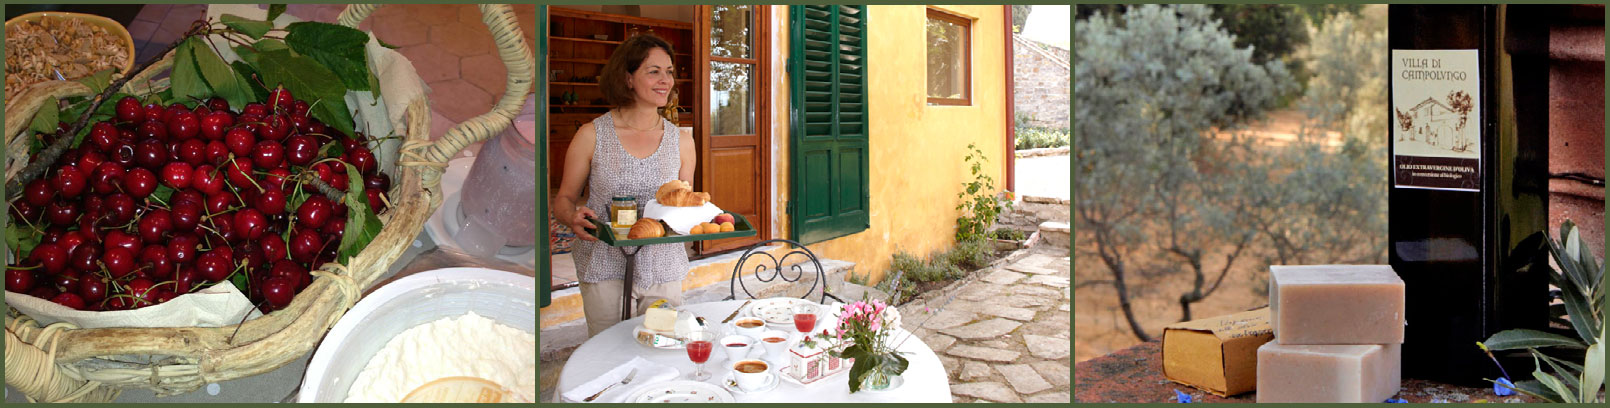 Eco Country House B&B Villa di Campolungo - Fiesole, Florence, Italy